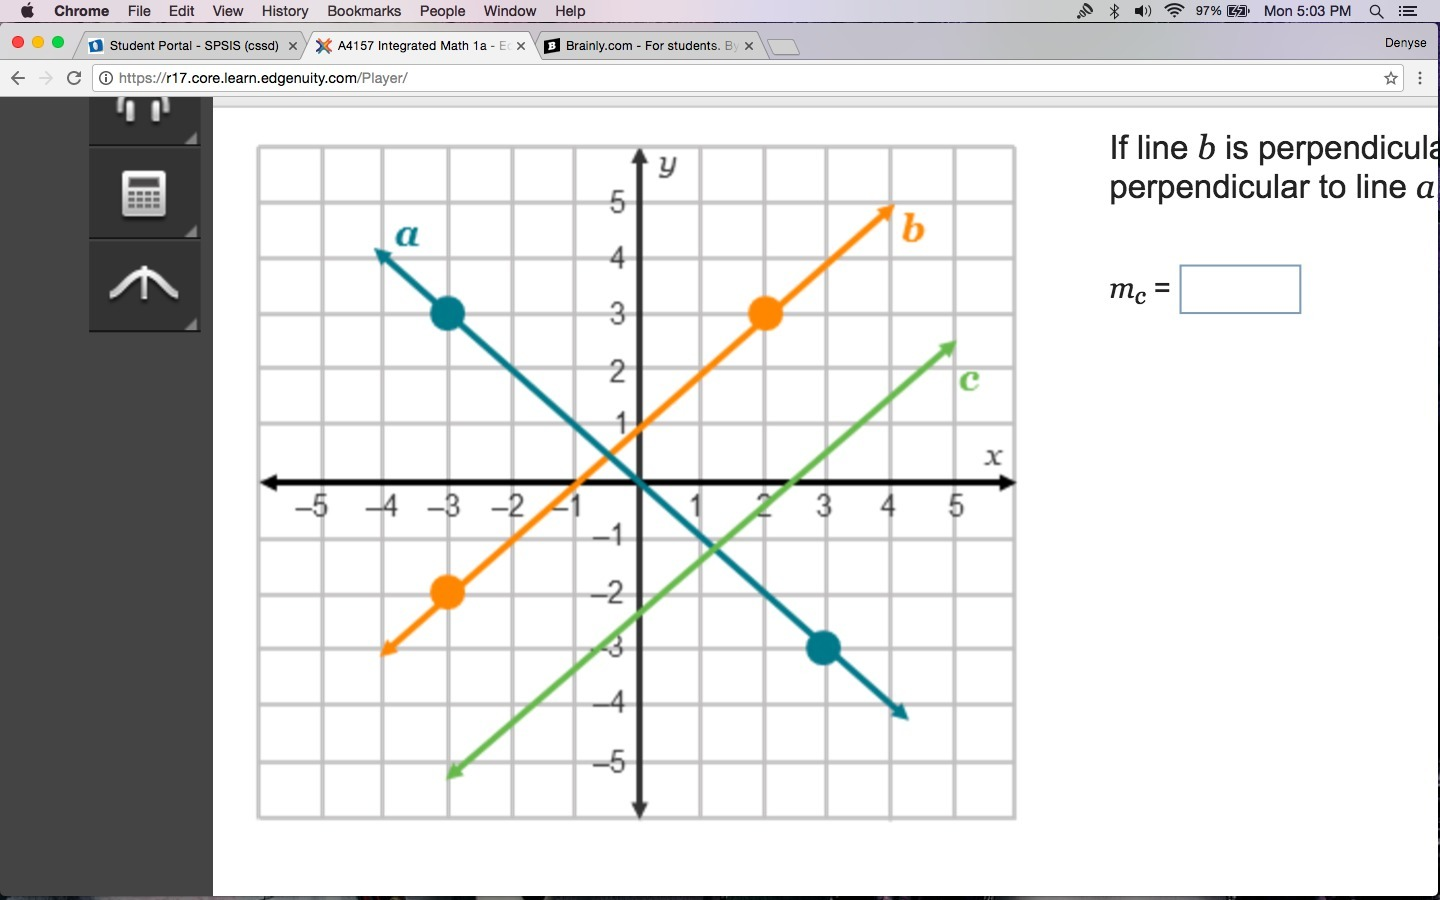 If line b is perpendicular to line a, and line c is